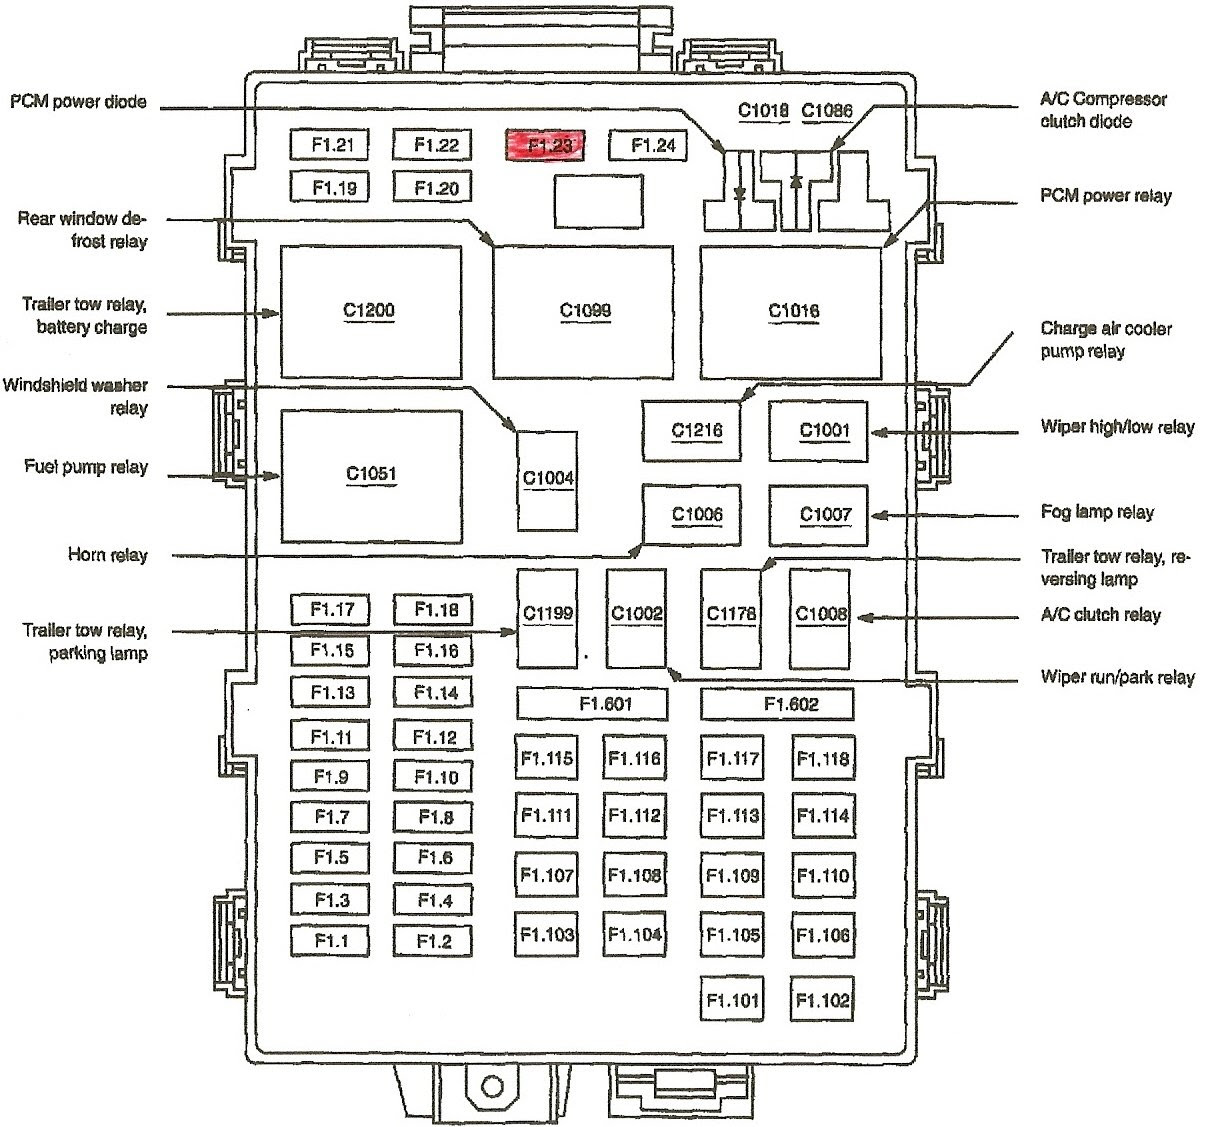 Ford E 450 Fuse Diagram For 2000